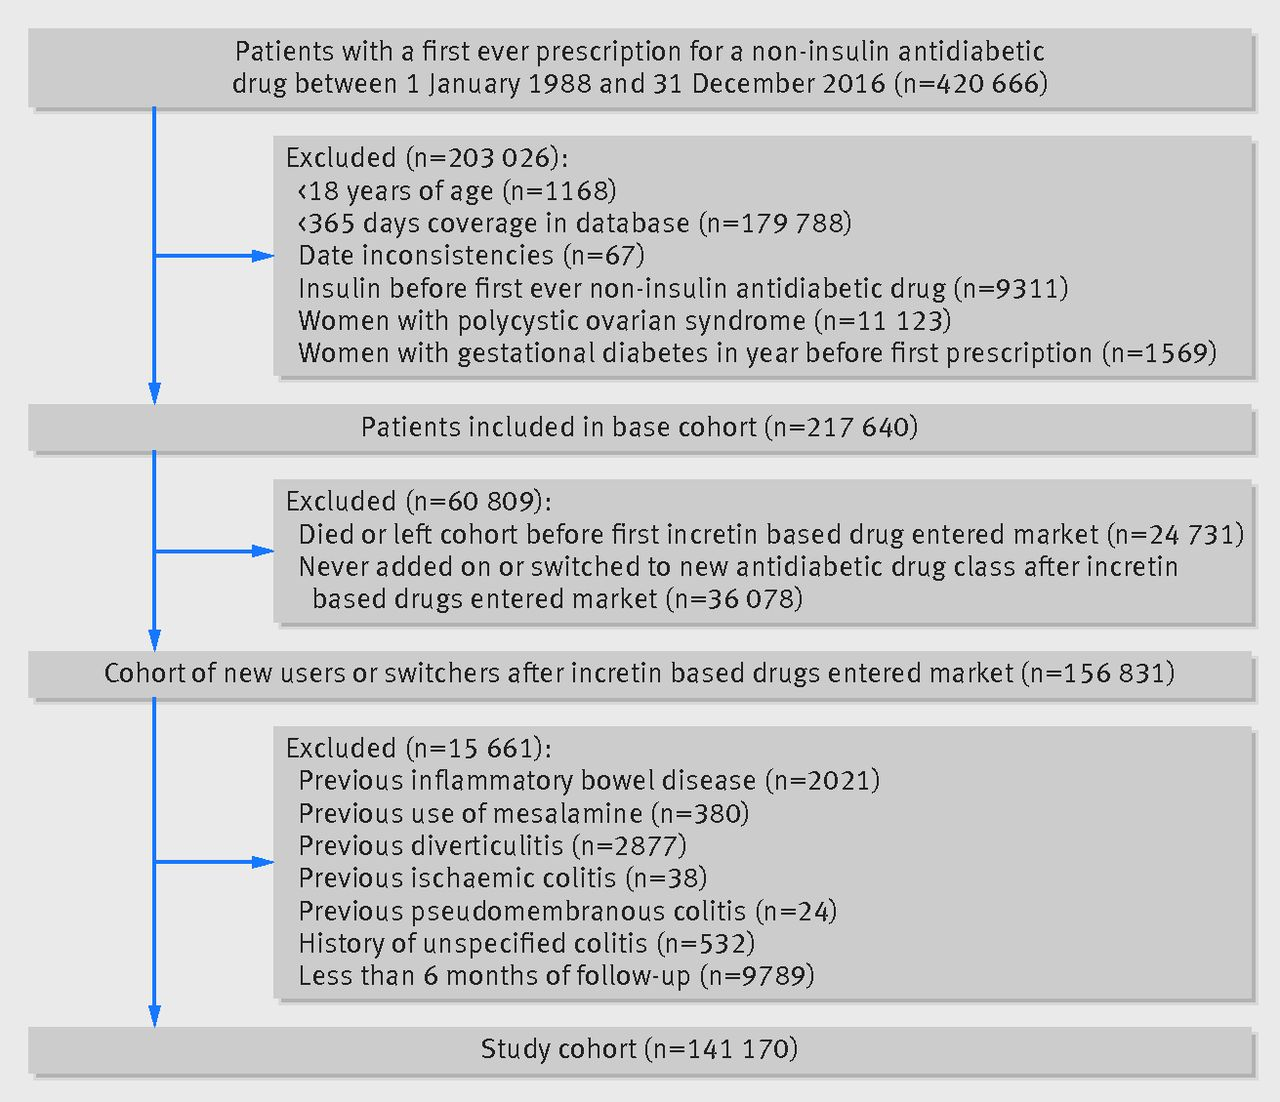 dipeptidyl peptidase 4 inhibitors and incidence of inflammatory